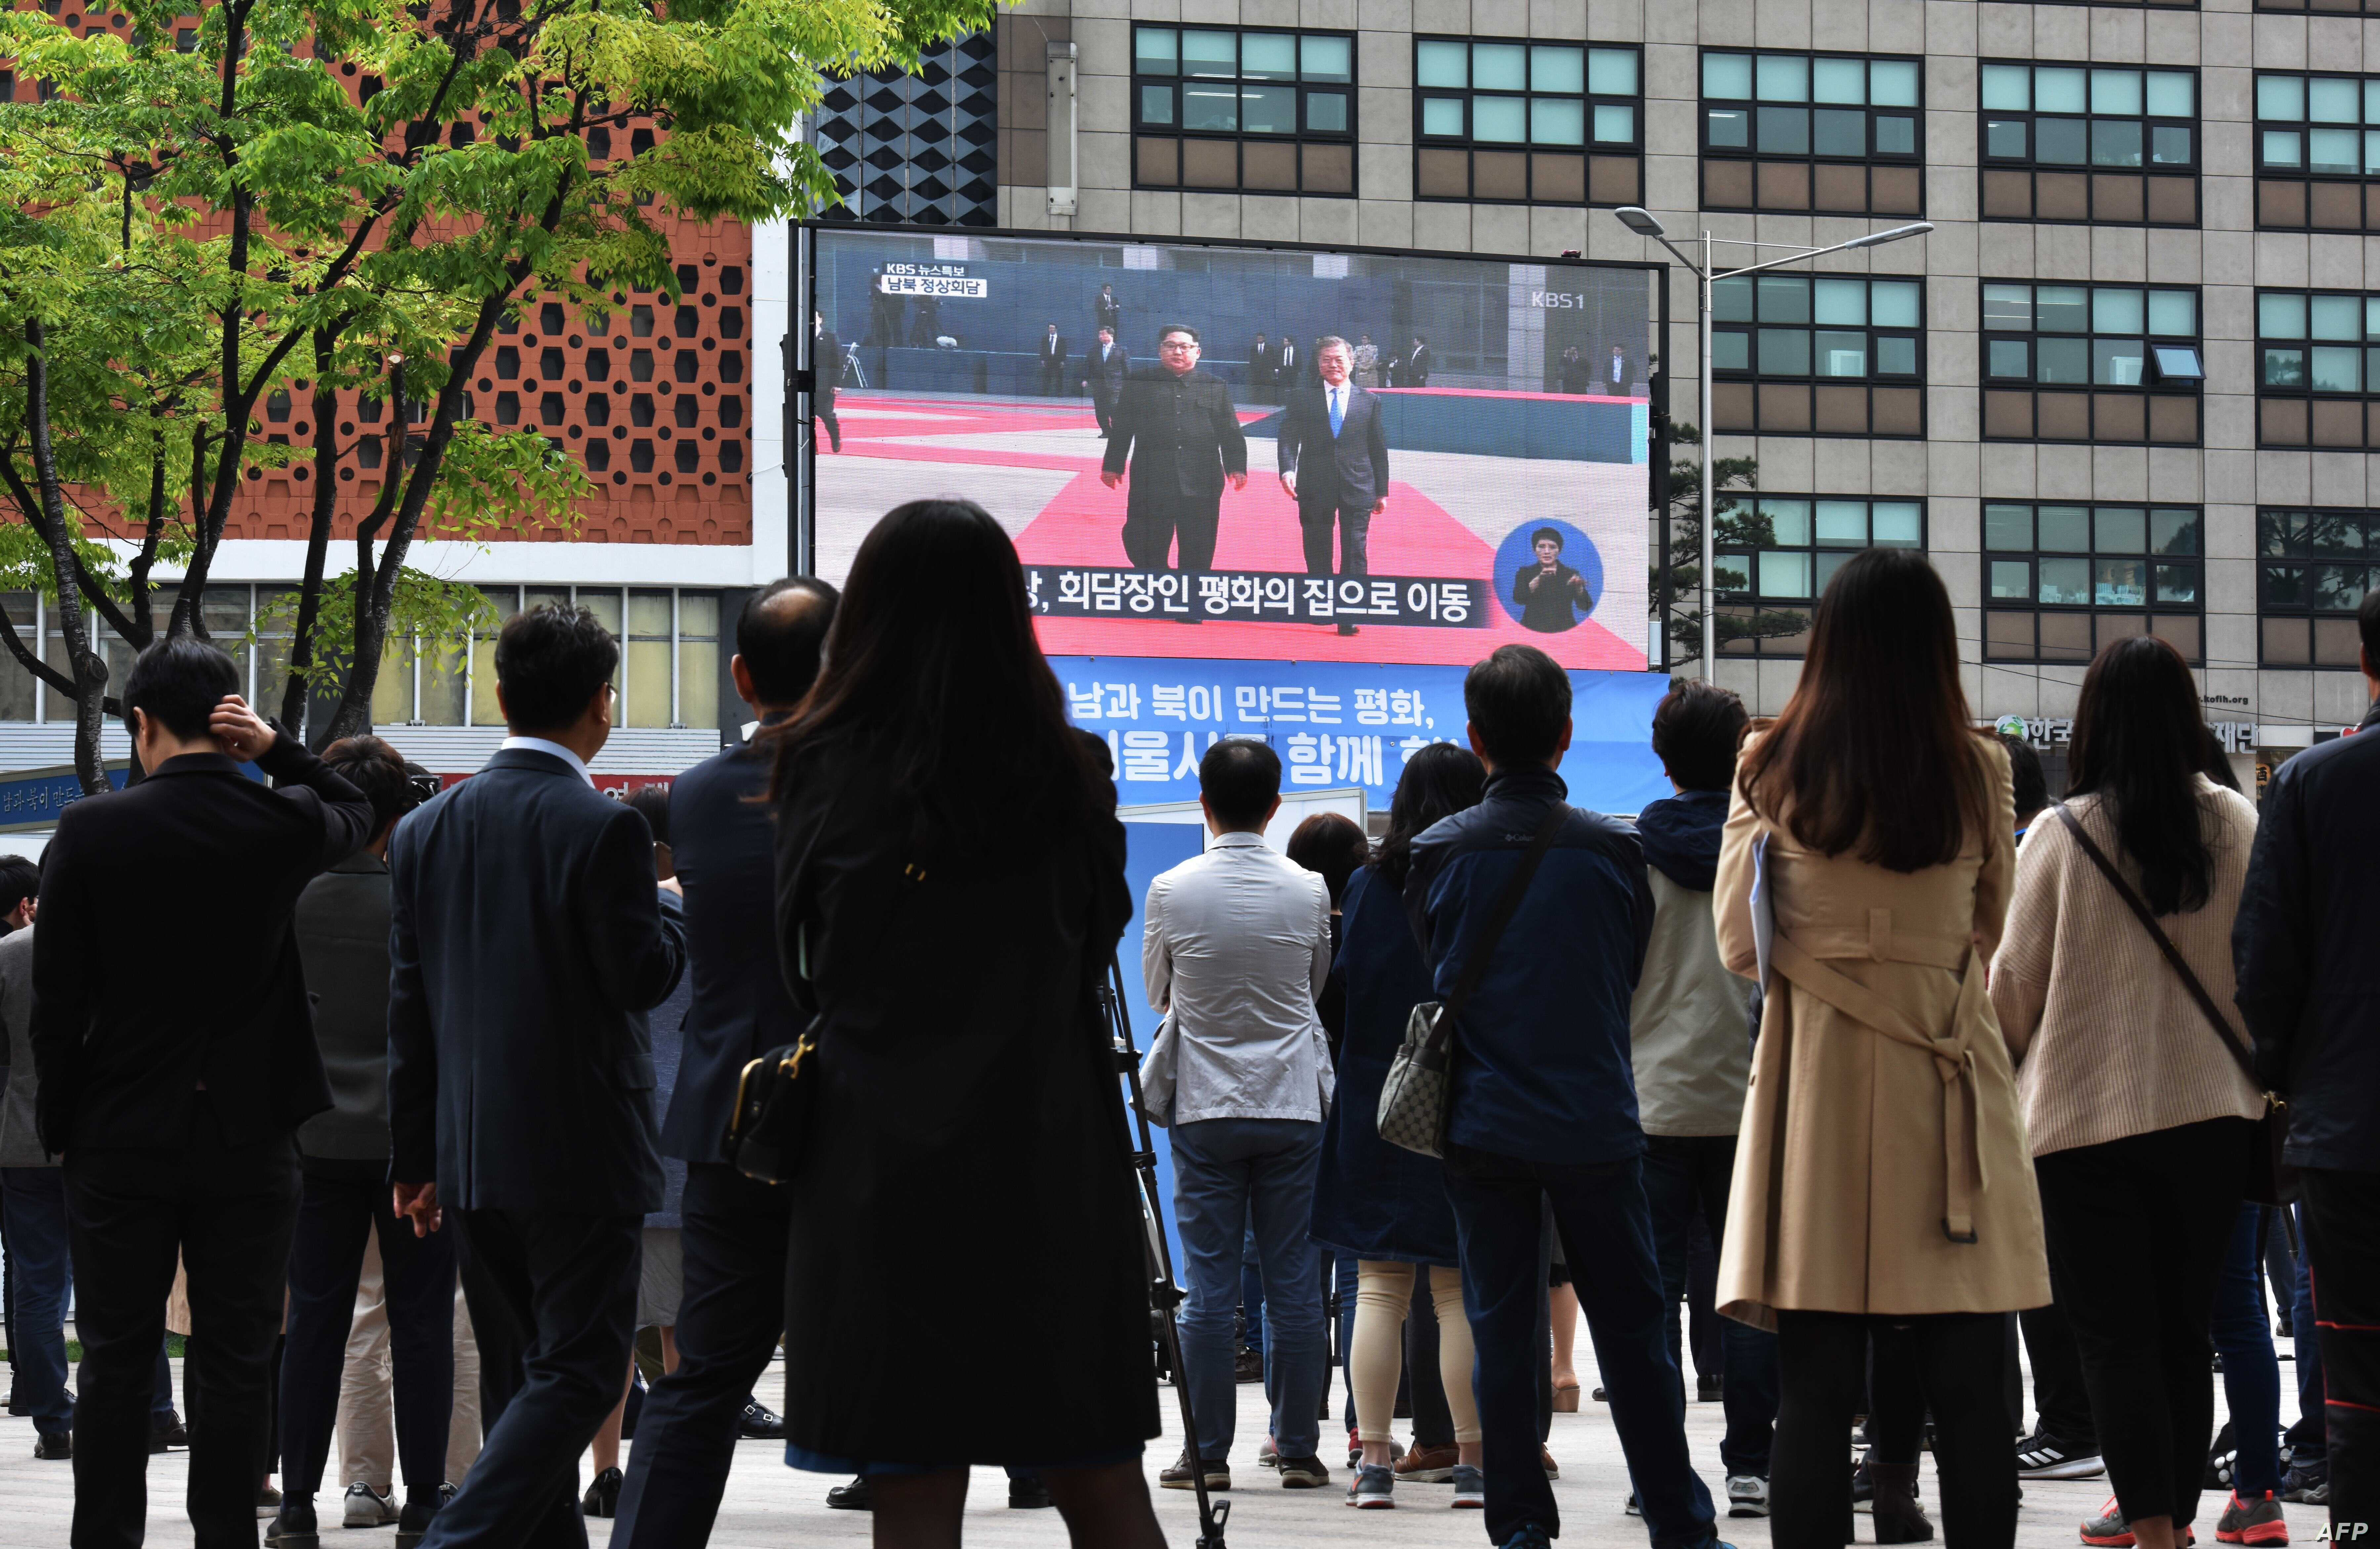 People watch live footage of South Korean President Moon Jae-in (R) walking with North Korean leader Kim Jong Un (L) at the Demilitarized Zone, on a screen in Seoul on April 27, 2018.